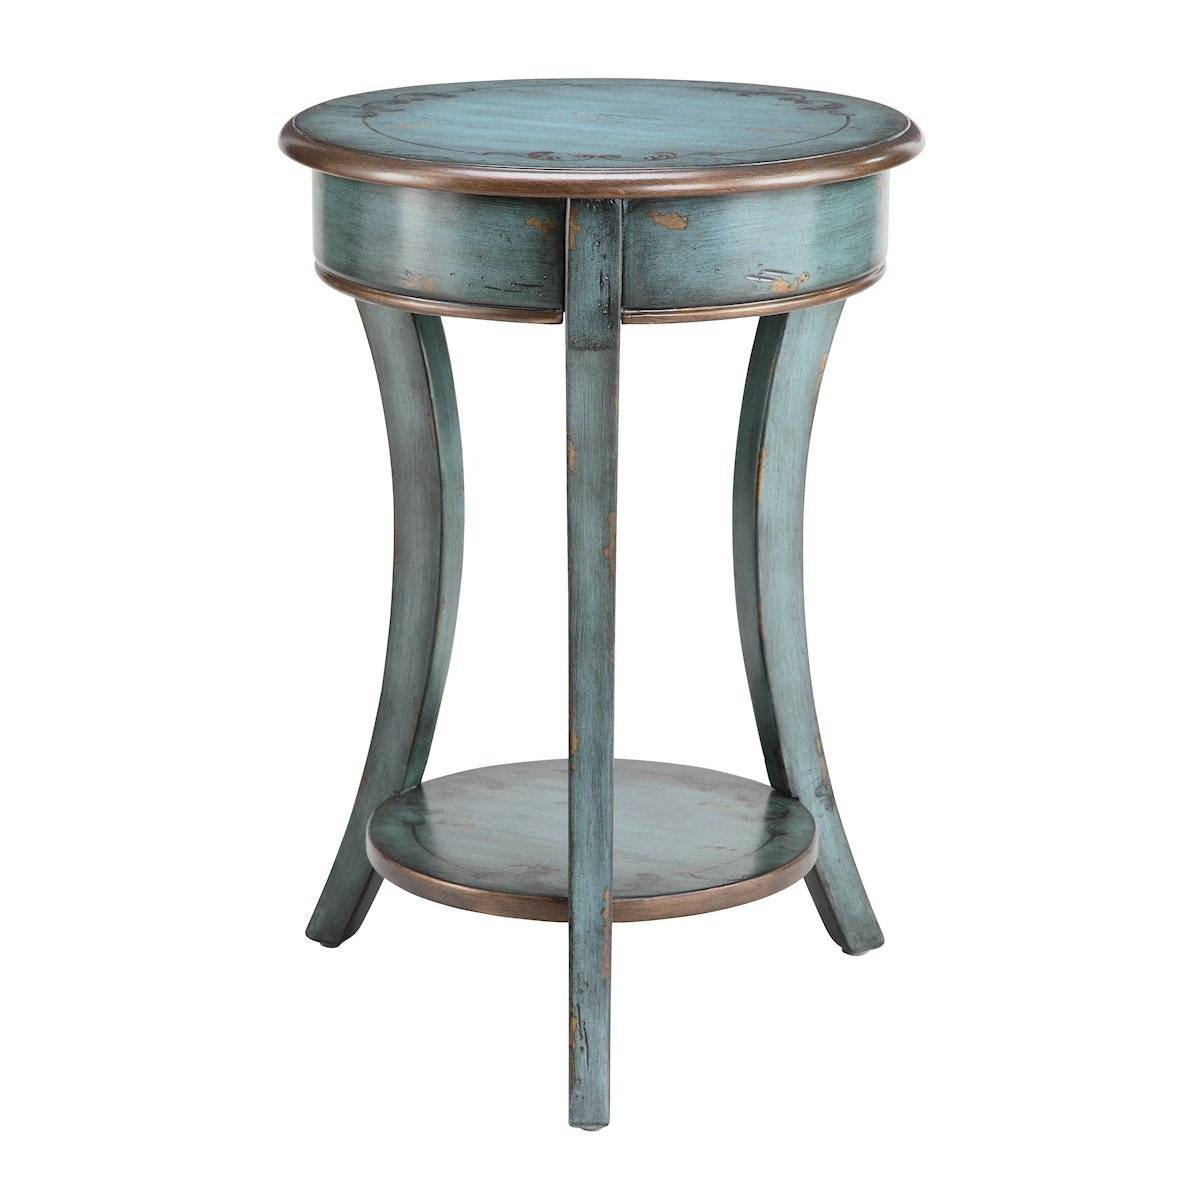 spindle leg side table dominick curved legs accent navy blue tiny coffee small space bedroom furniture minsmere cane west elm industrial oval patio cover bayside furnishings